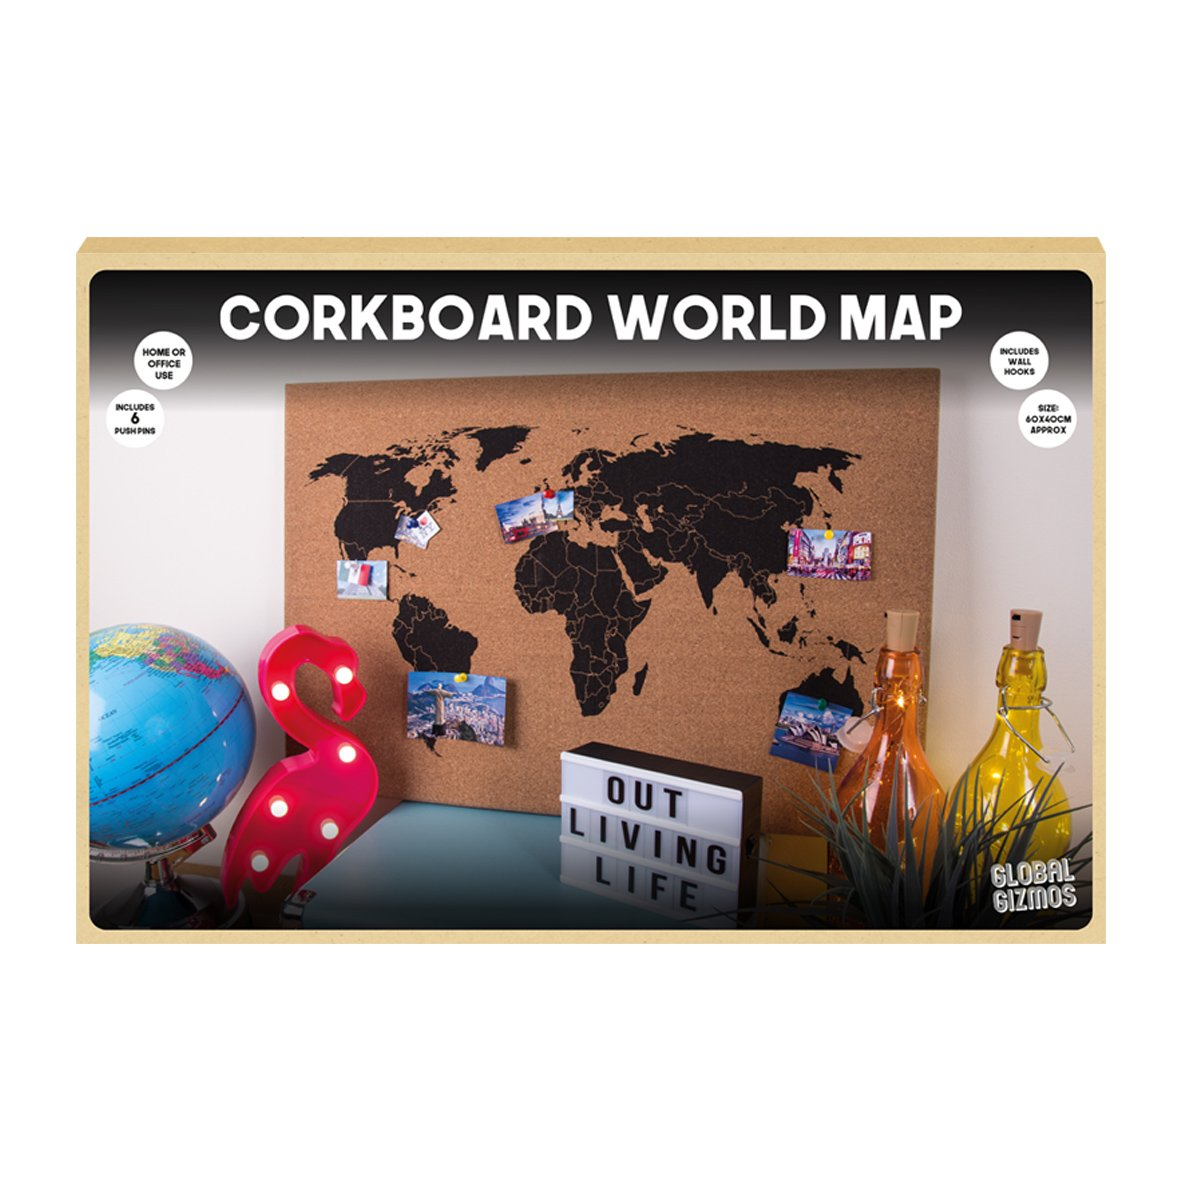 Global gizmos corkboard world map wall hanging decoration memo board global gizmos corkboard world map wall hanging decoration memo board 60x40cm including pins wood brown gumiabroncs Images